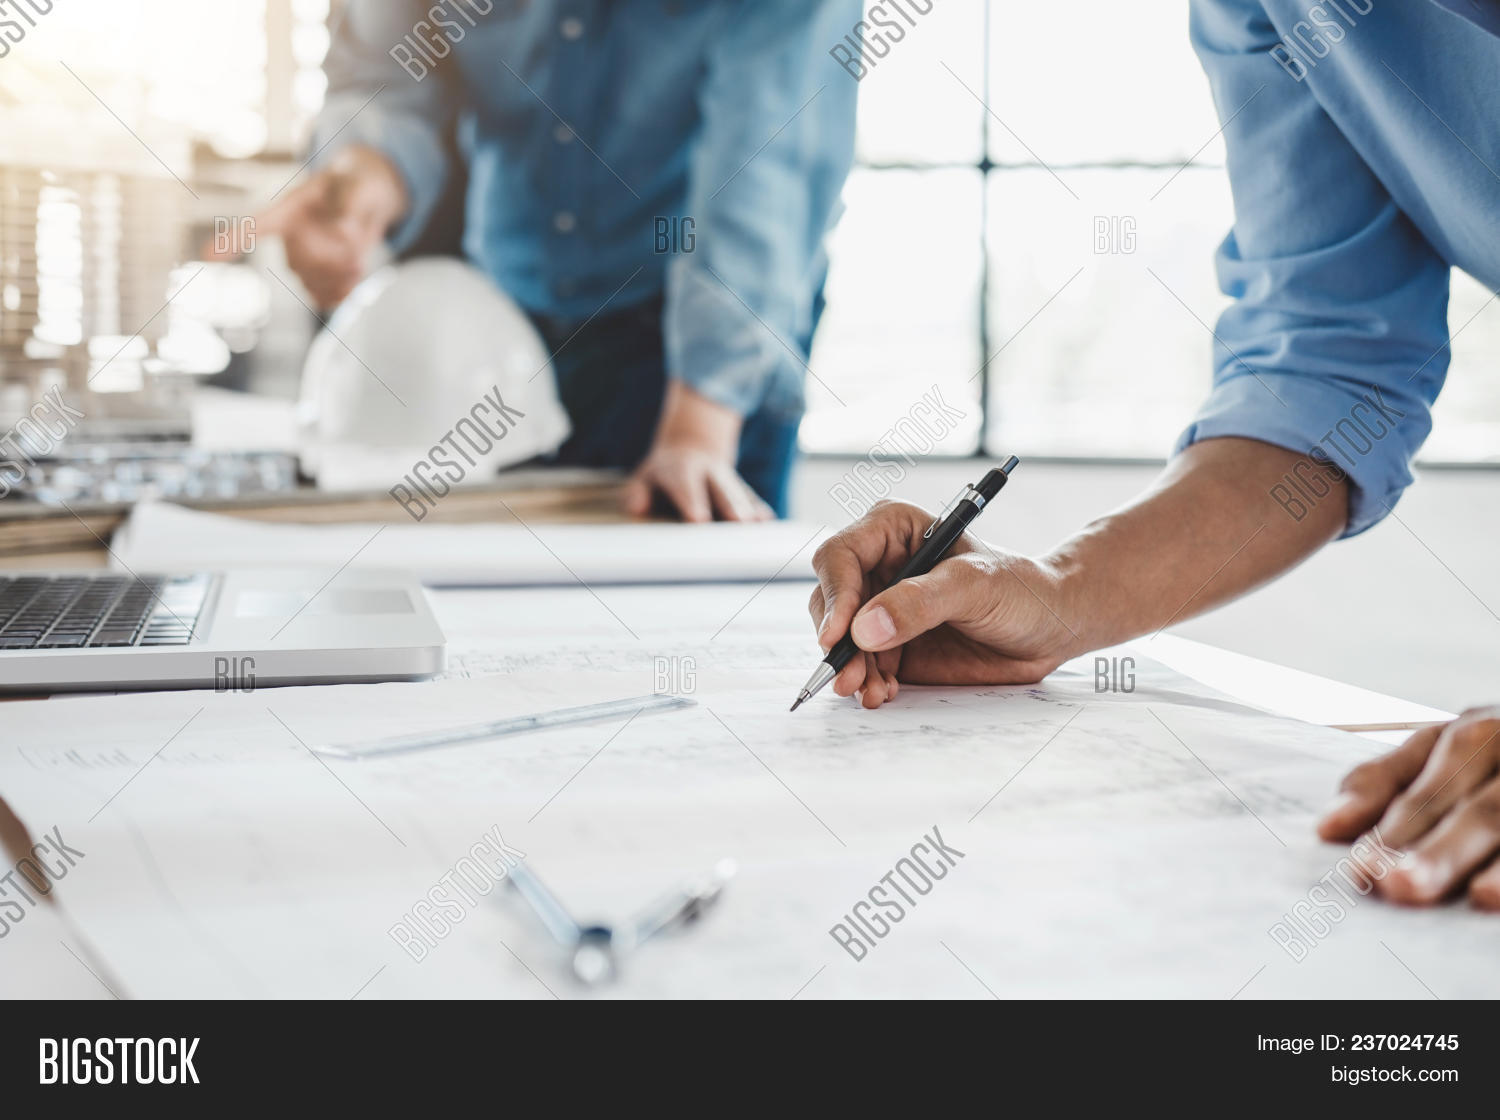 architect,architectural,architecture,associate,blueprint,builder,building,business,collaboration,communication,compass,construction,contractor,cooperation,design,detail,dividers,draft,drawing,engineer,engineering,equipment,establish,foreman,hand,helmet,improvement,industrial,industry,instrument,interaction,measuring,meeting,model,paperwork,partner,plan,professional,project,ruler,sketch,structural,structure,teamwork,technical,vision,working,workplace,worksite